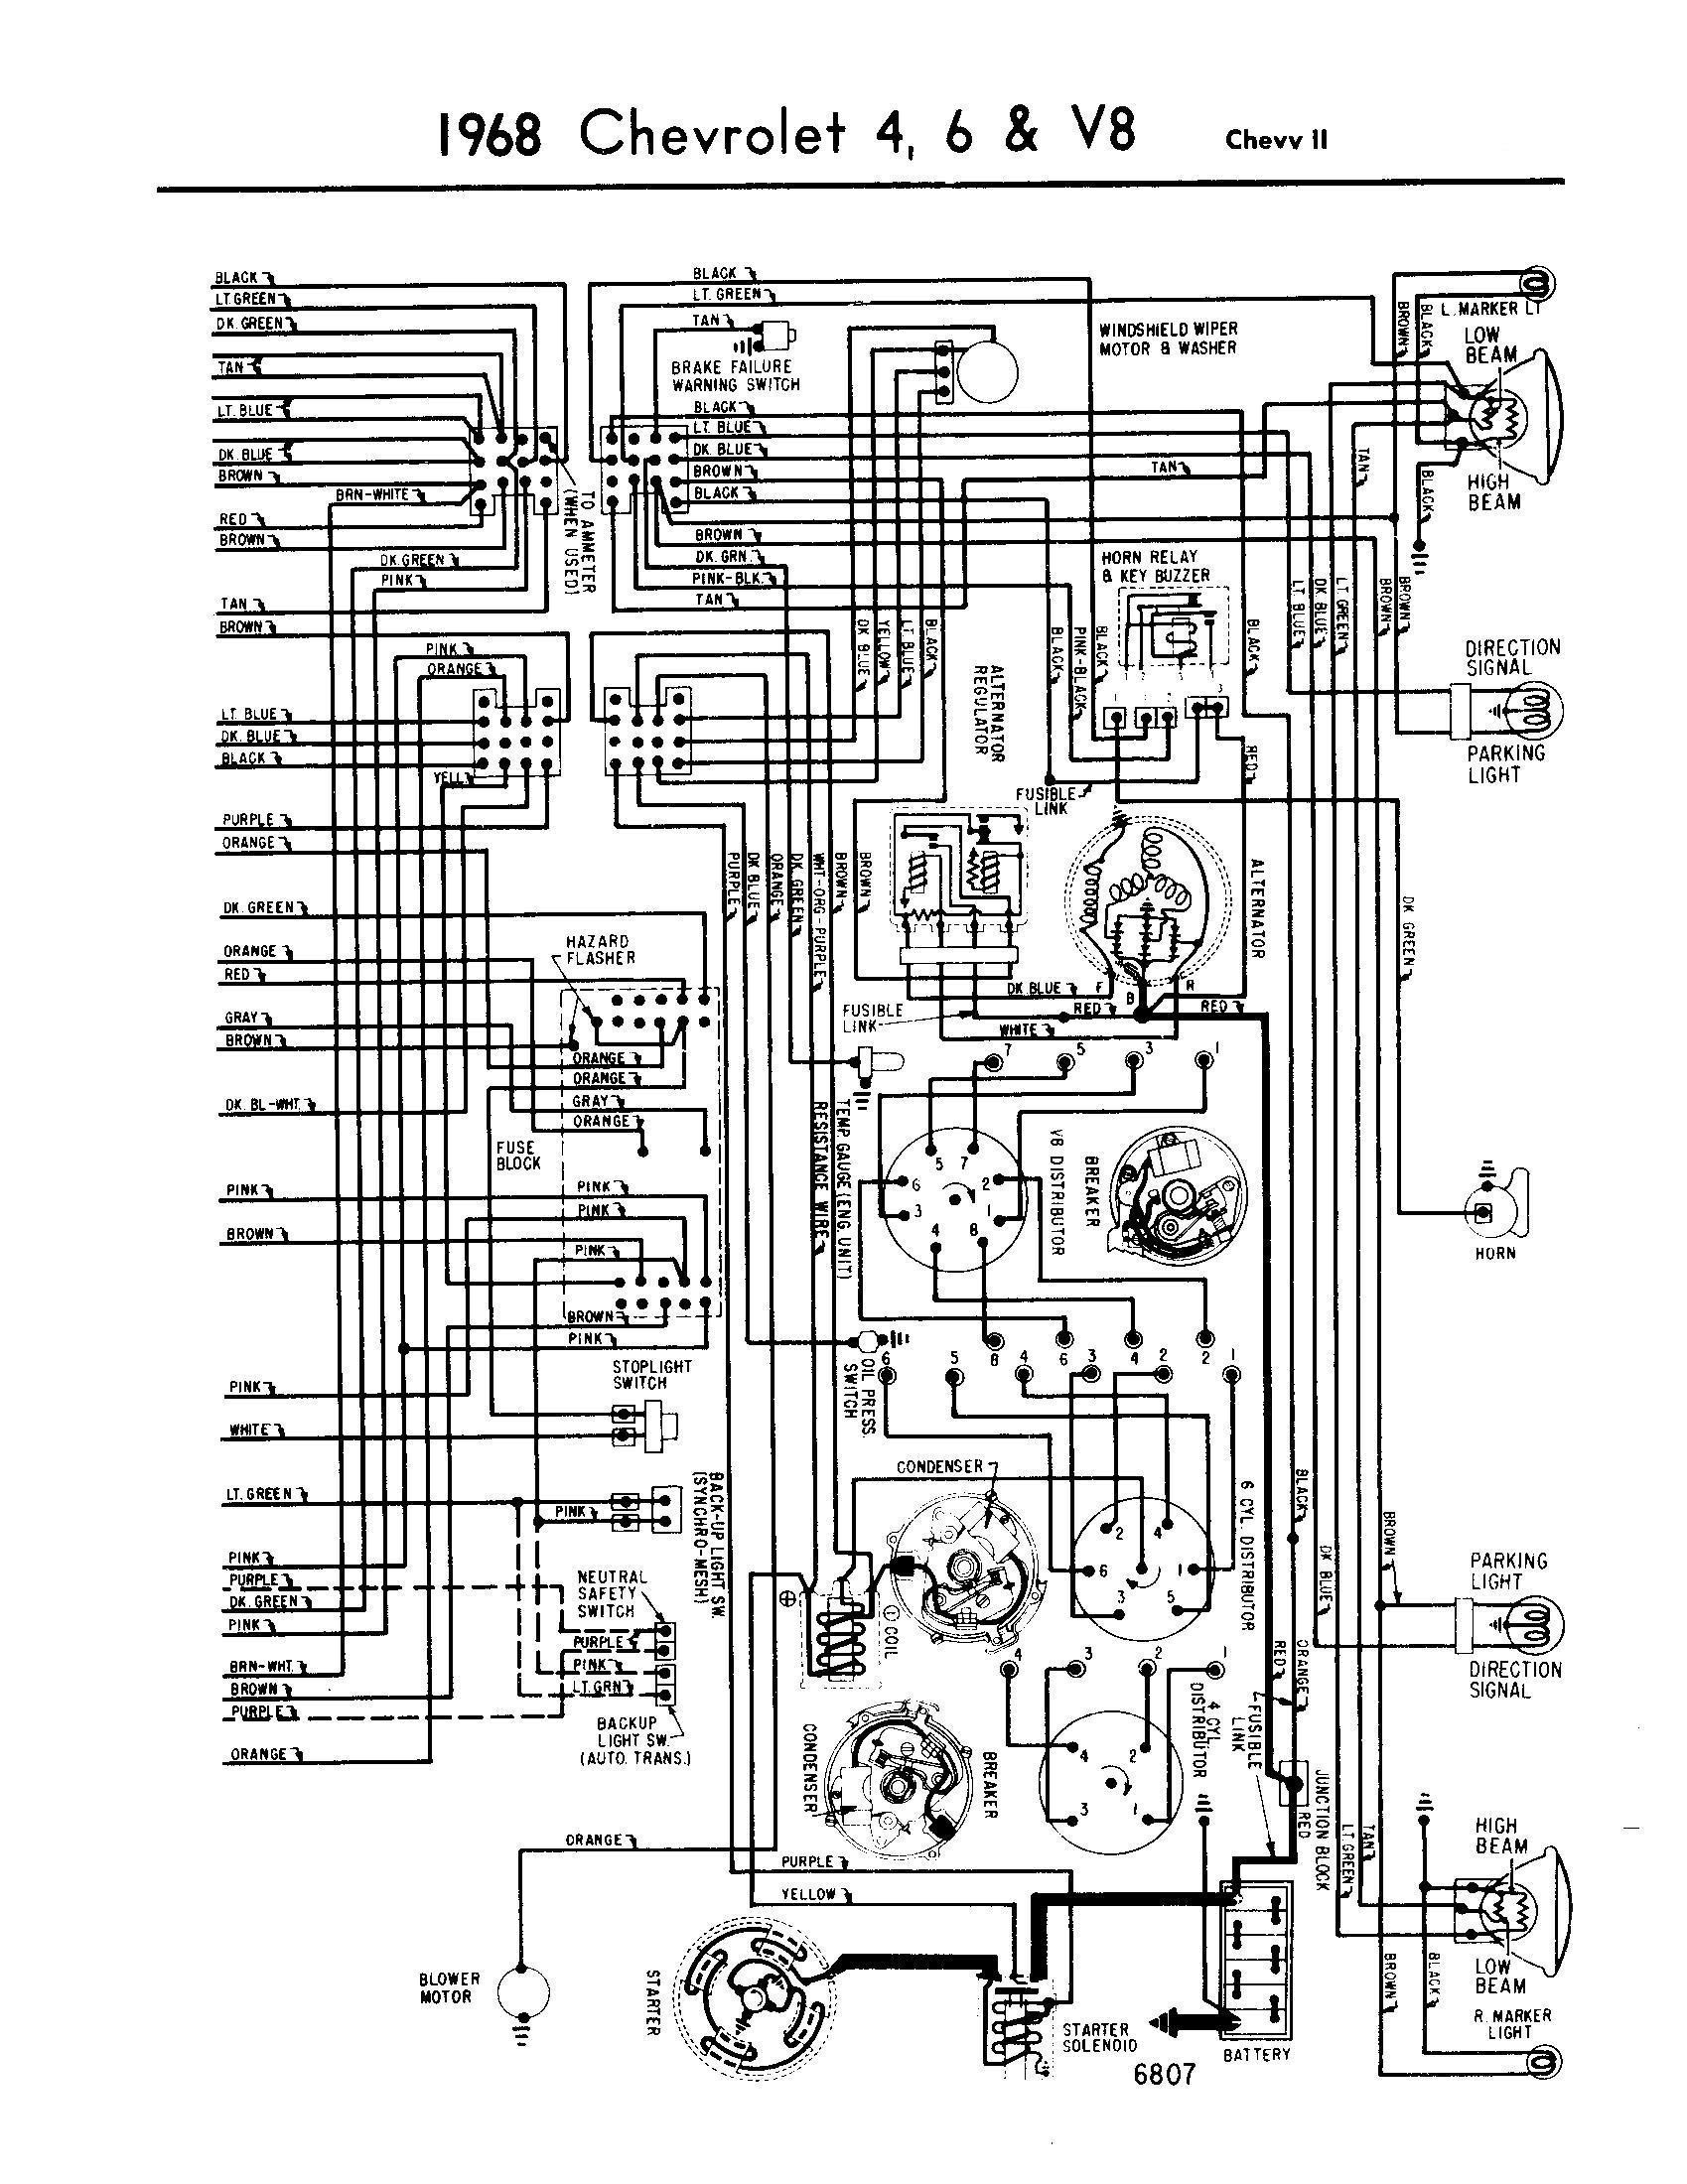 Chevelle Engine Diagram - Wiring Diagram